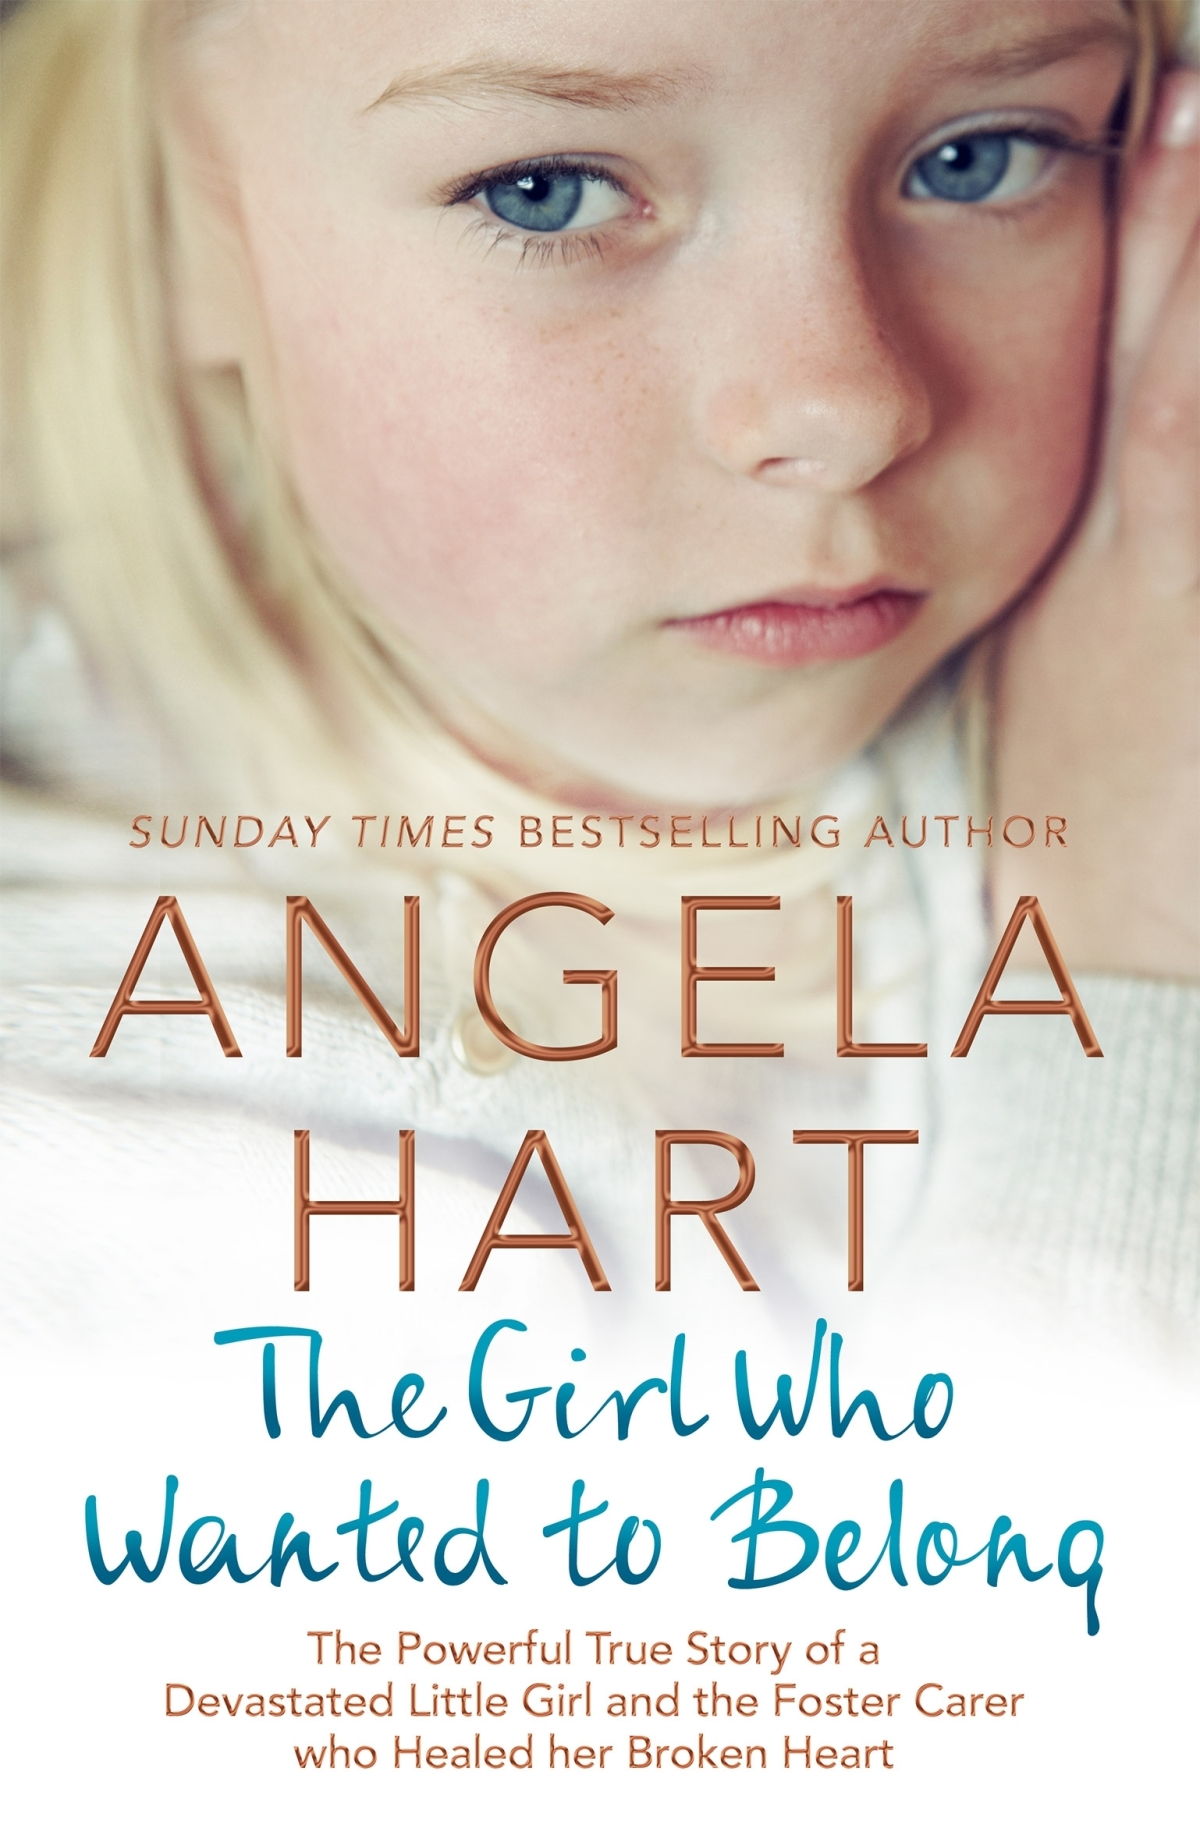 Blog Tour (Review): The Girl Who Wanted to Belong by Angela Hart @booksbybluebird